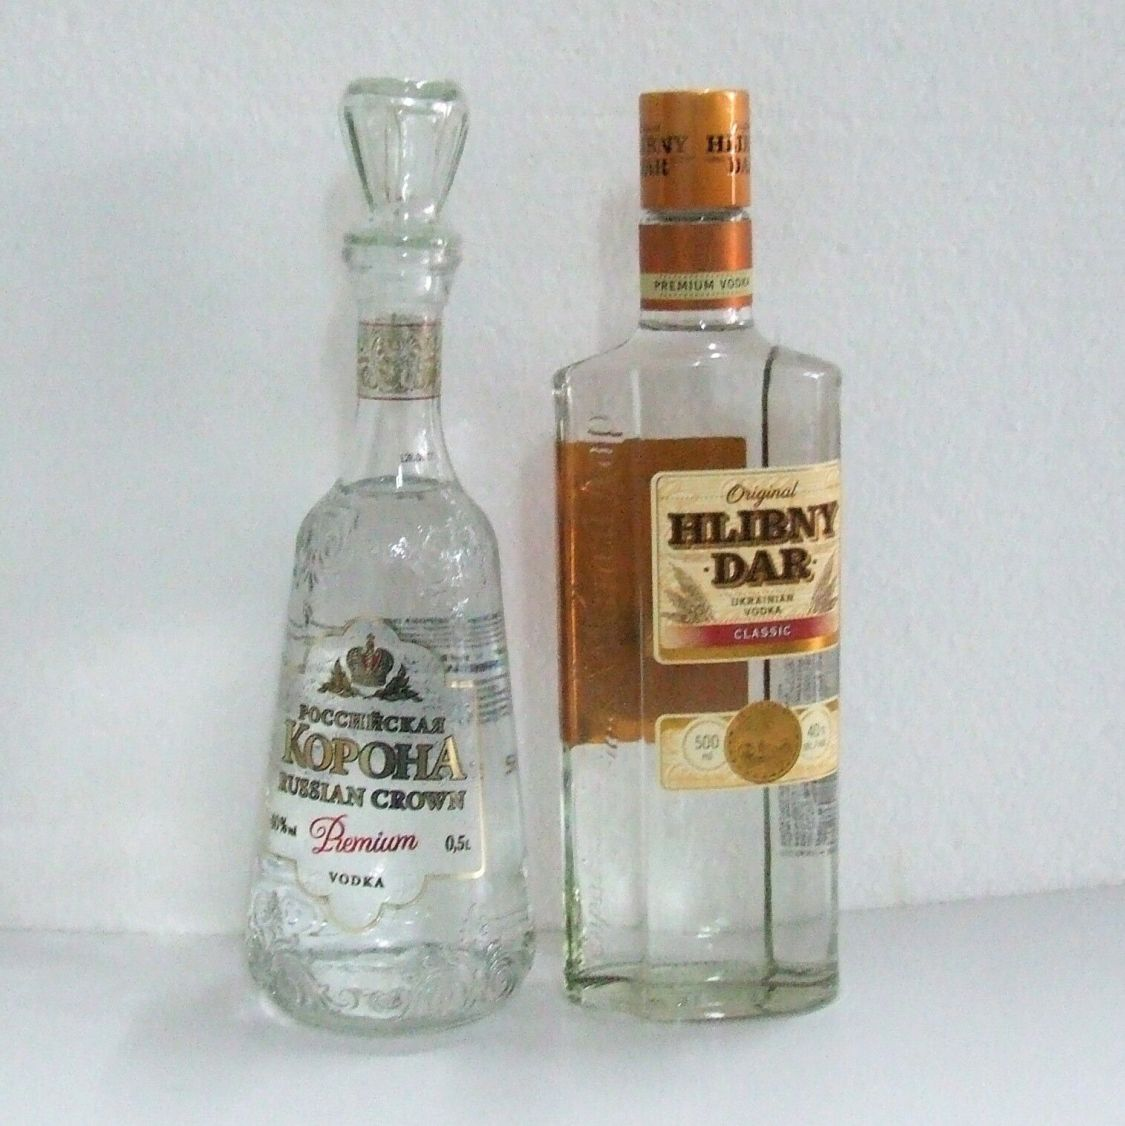 (21,00 €/L) Russischer Ukrainischer Wodka 0,5 L alc.40% vol. Premium Vodka